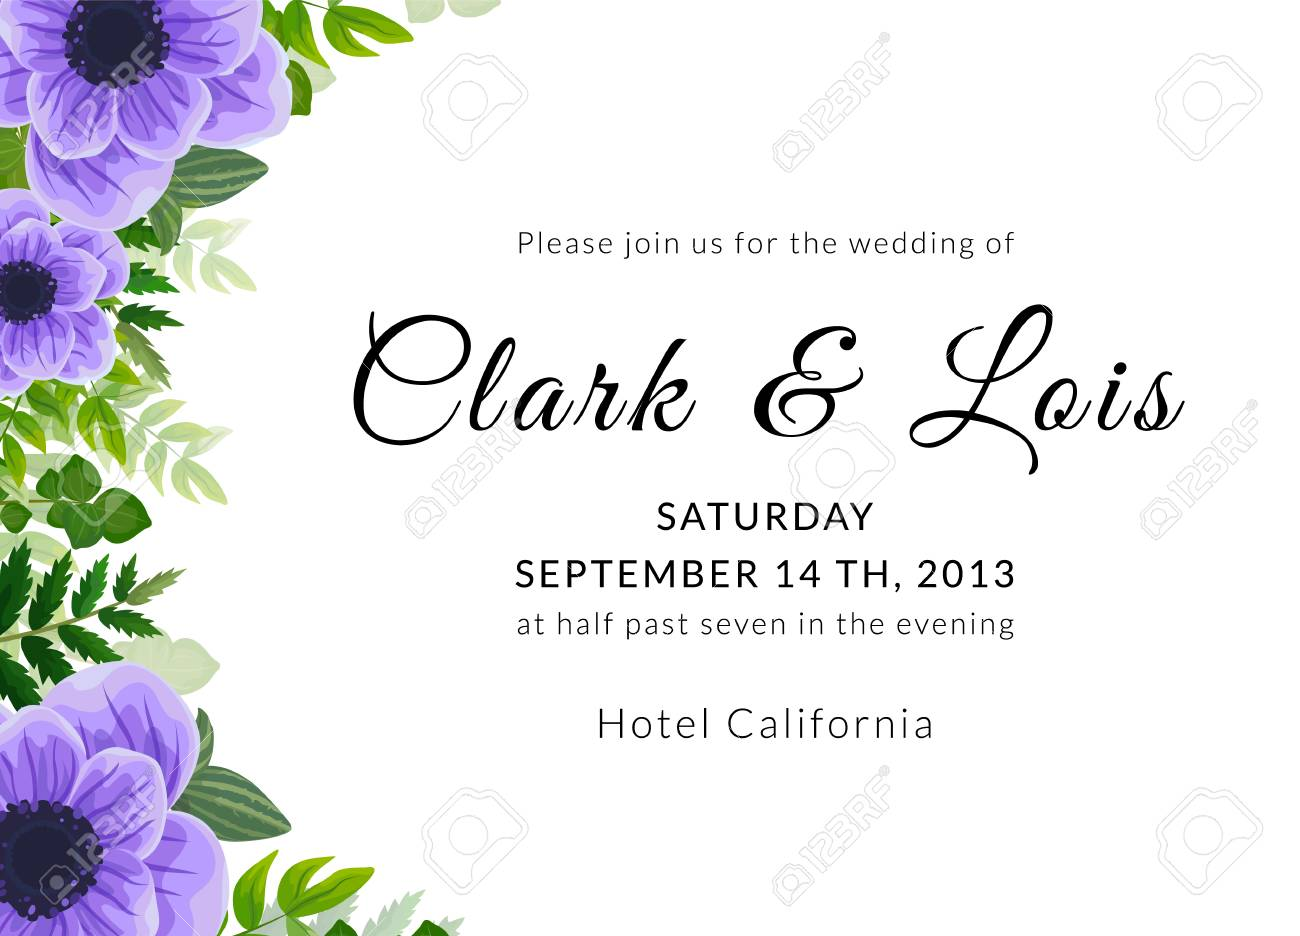 Wedding Invitation Card Lovely Template Card Design With Violet Anemone Flower Forest Greenery Ferns Plants Green Leaves